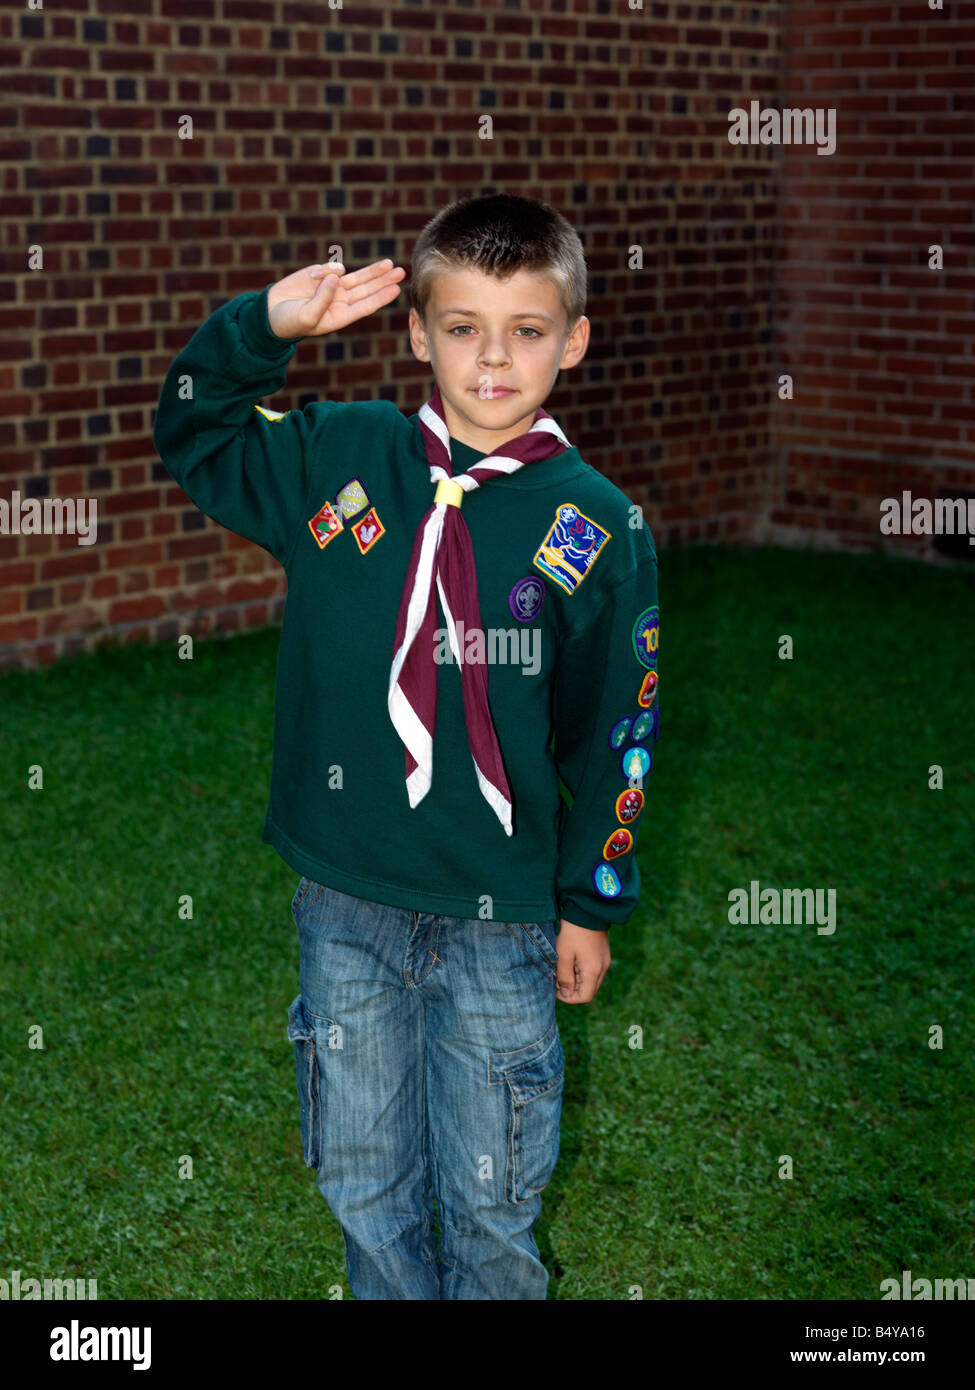 Cub Scout In Uniform with Badges - Stock Image